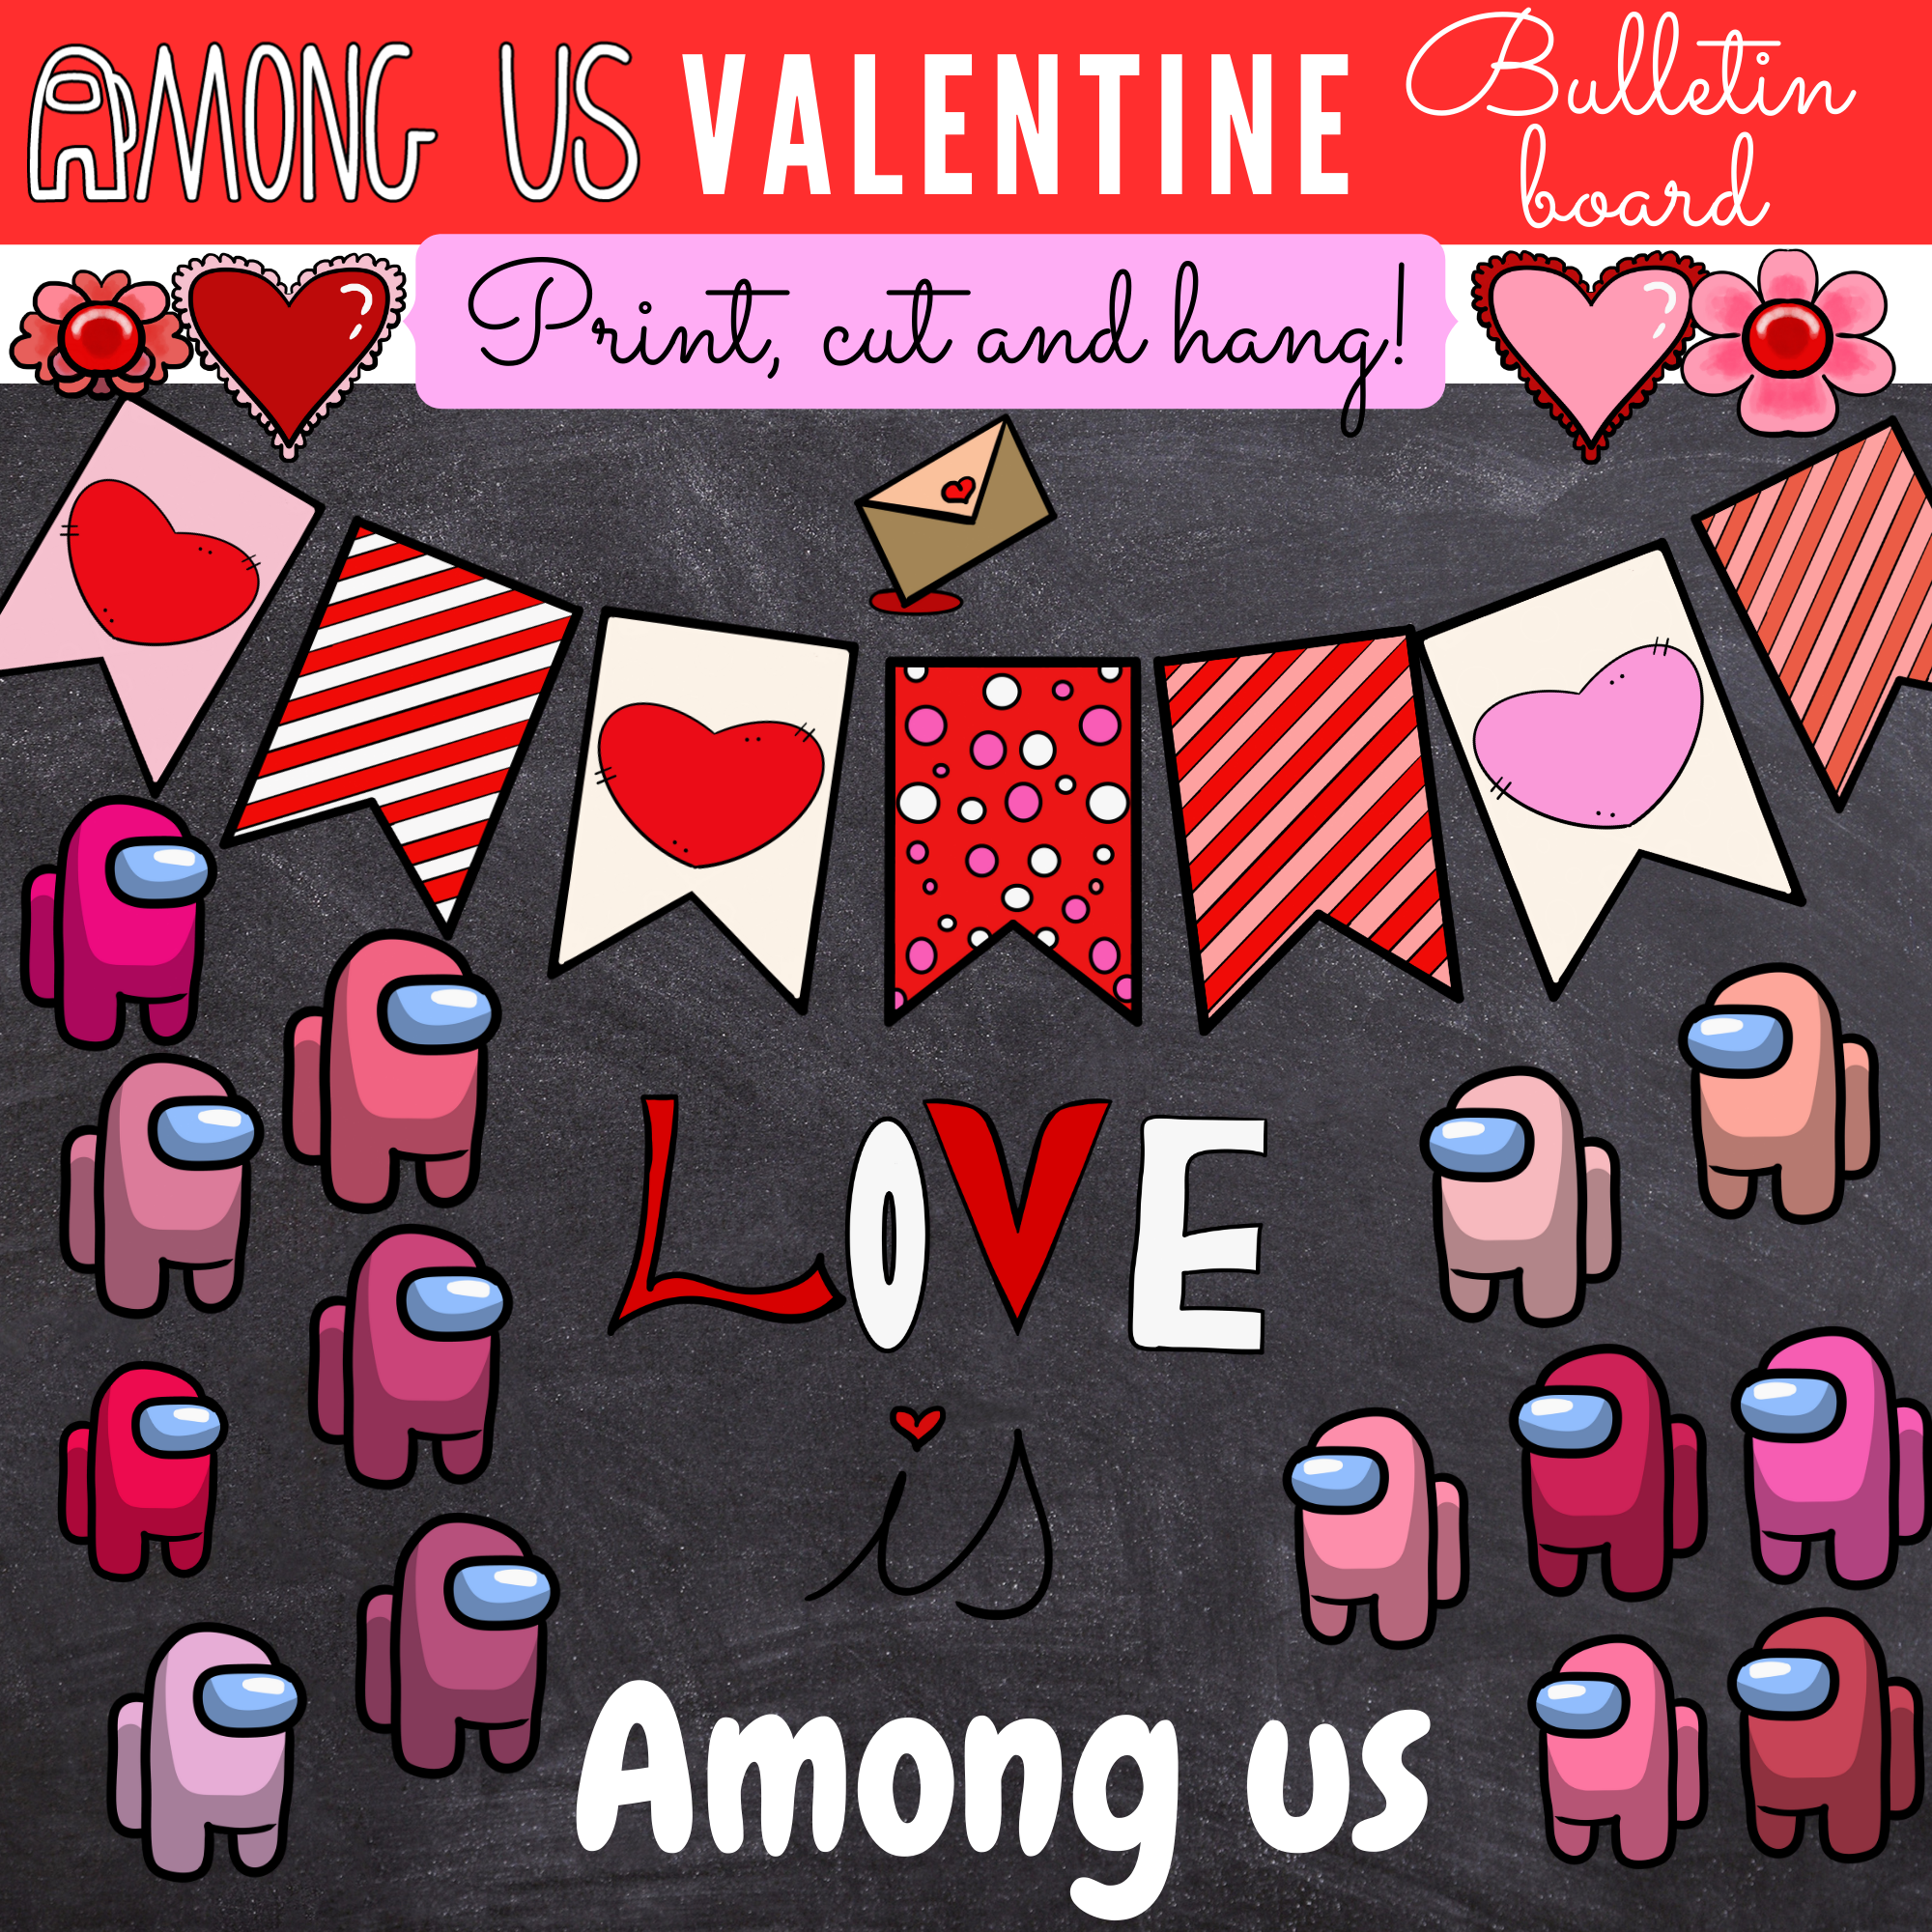 Among Us Valentines Day Bulletine Board Theme In 2021 Valentines Day Bulletin Board Teaching Holidays Bulletin Boards Theme